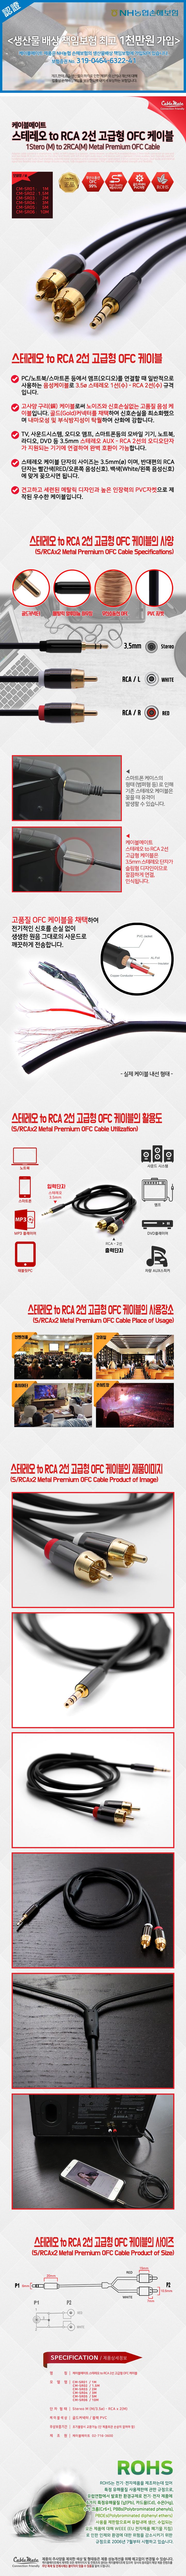 CABLEMATE  스테레오 to RCA 2선 고급형 케이블(1.5m, CM-SR02)